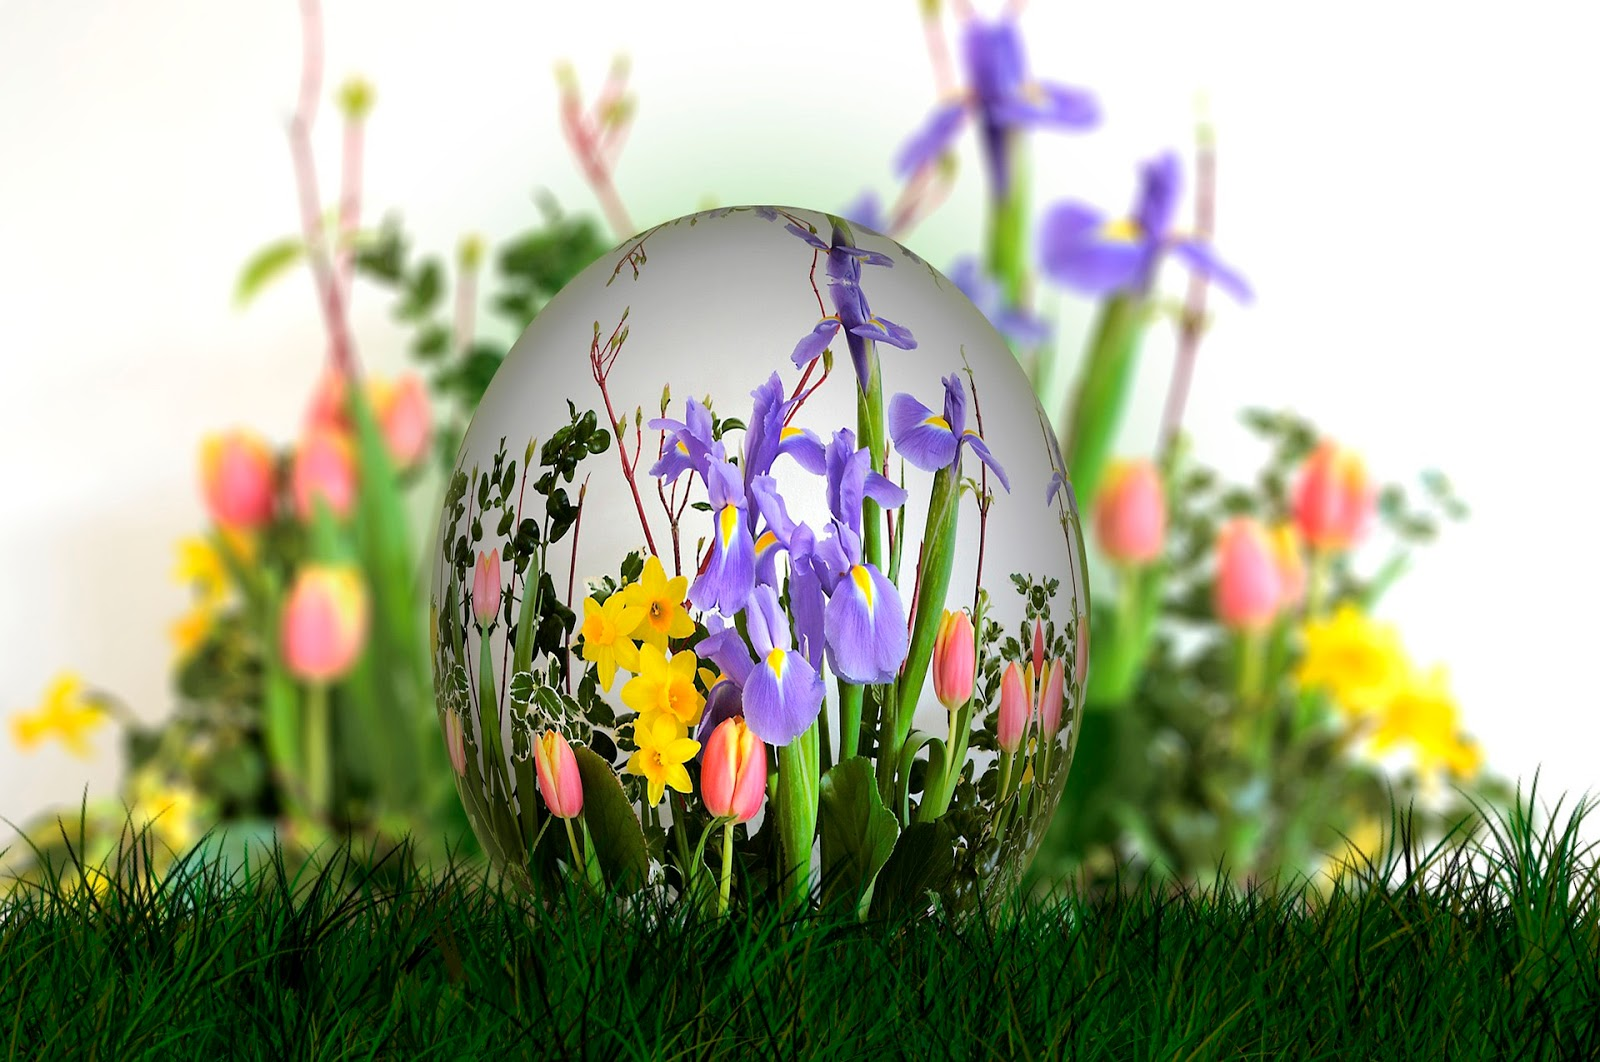 Easter traditions in the UK and Europe, including religious celebrations and national activities